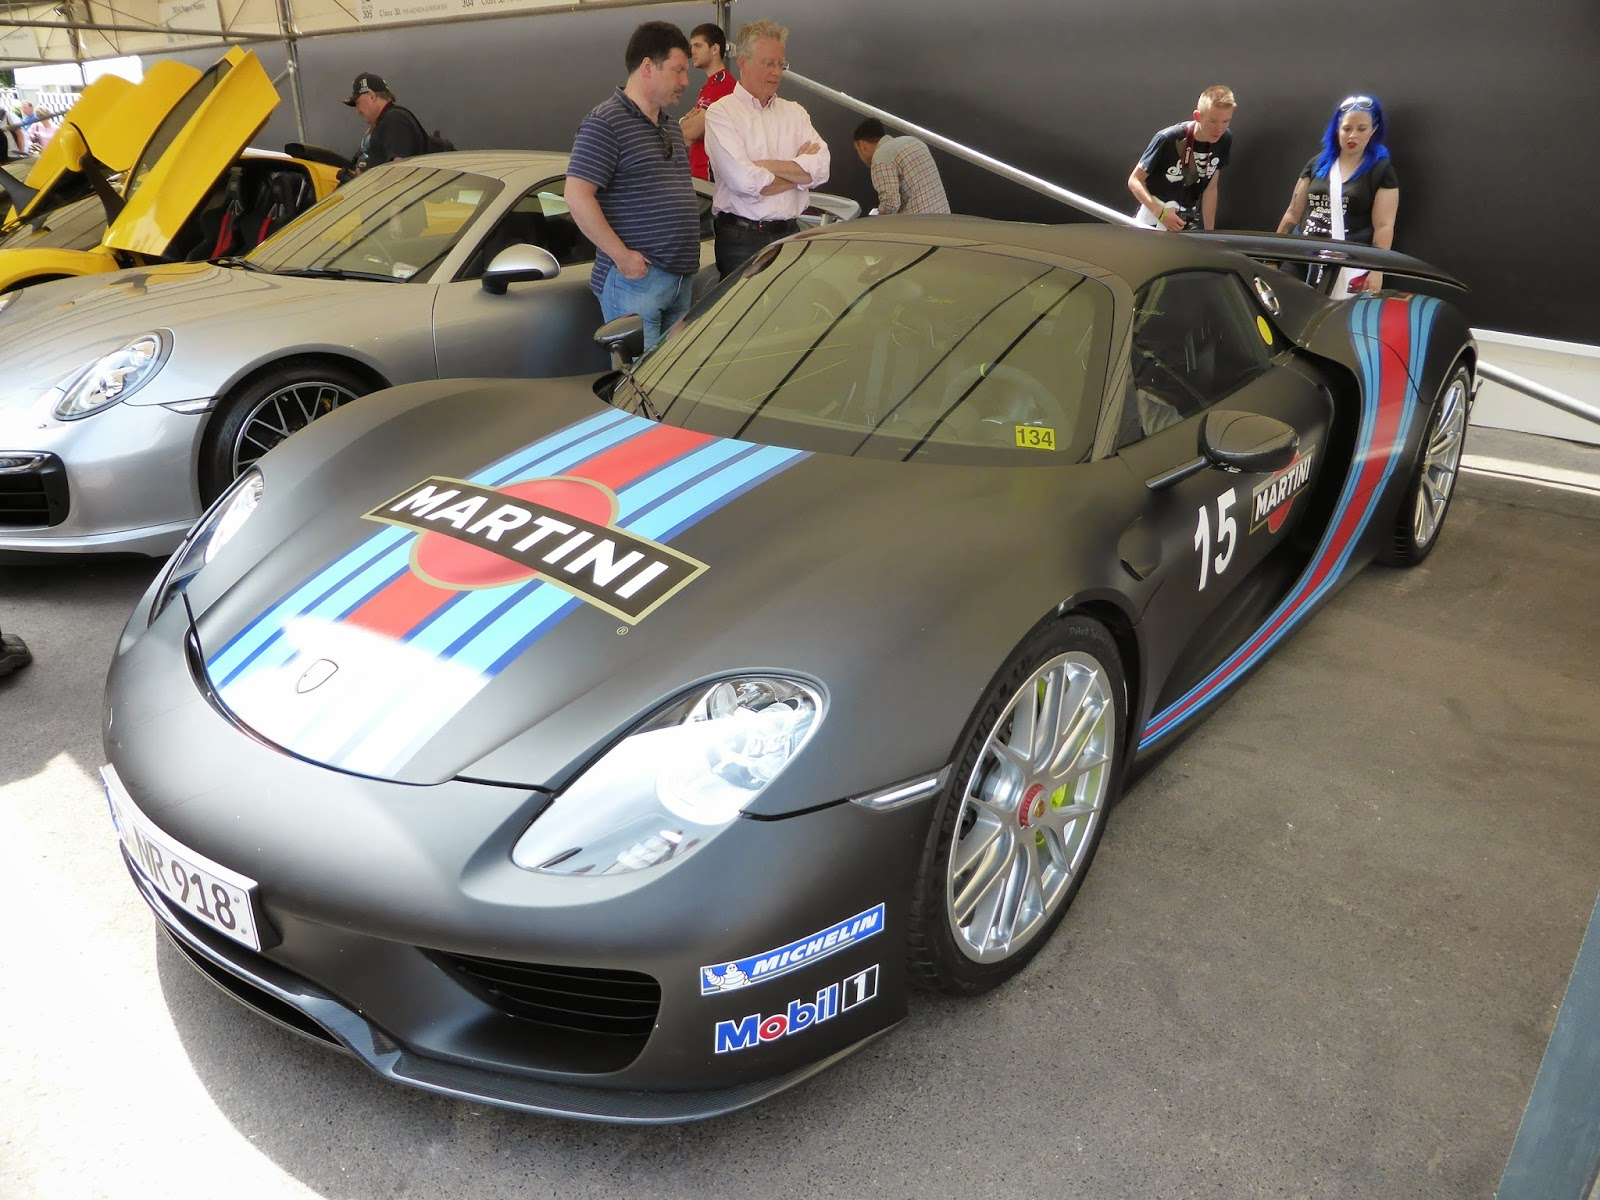 Porsche 918 in the supercar paddock